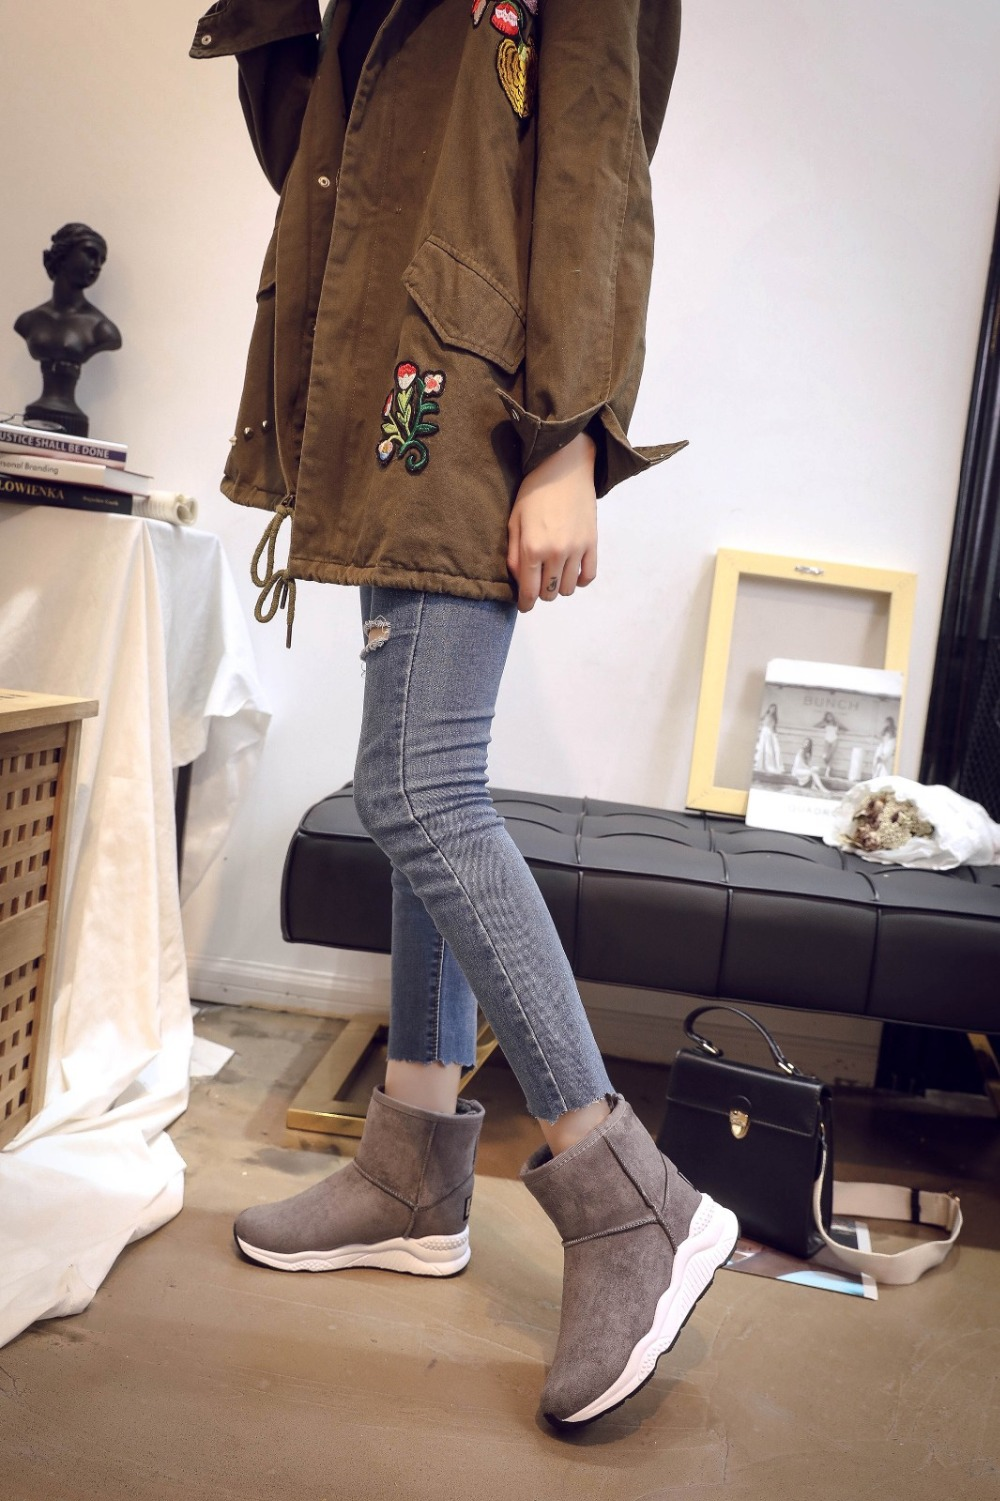 Winter Snow Boots Women Casual Shoes Slip On Warm Plush Women Ankle Boots Flat Heel Sport Ladies Shoes Booties Botas Mujer XZ82 (14)